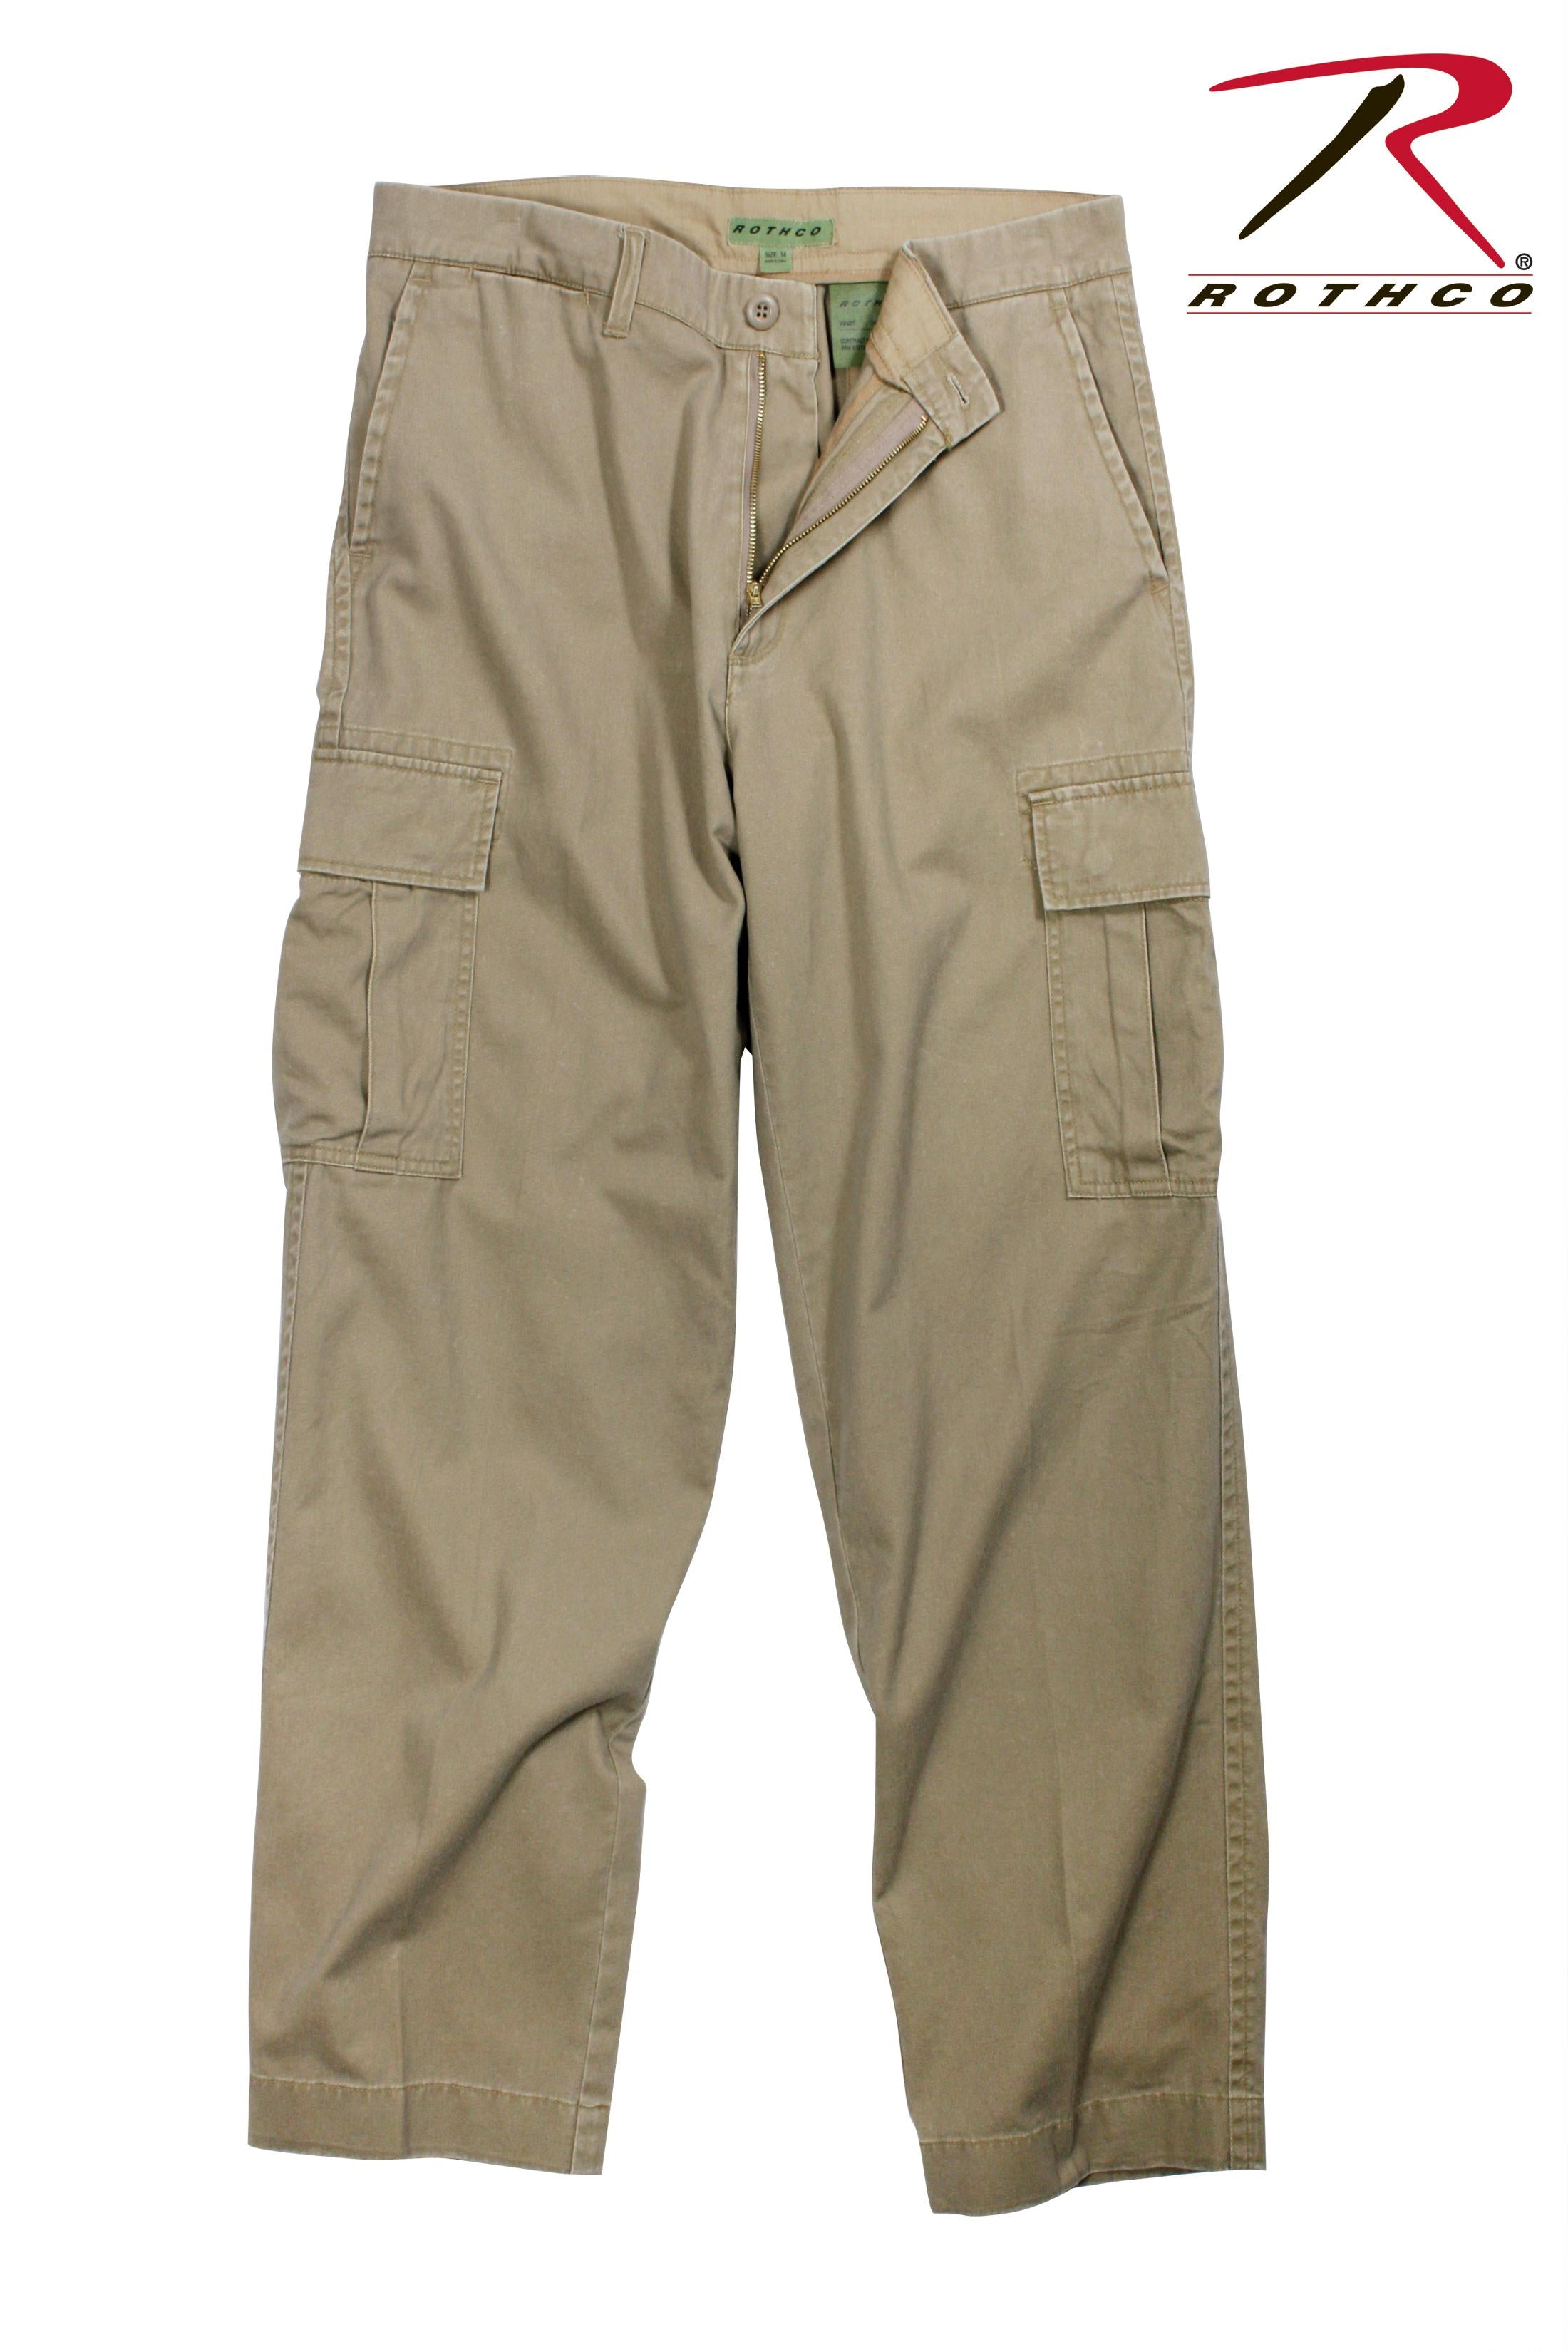 Rothco Vintage 6-Pocket Flat Front Fatigue Pants - Khaki / 32